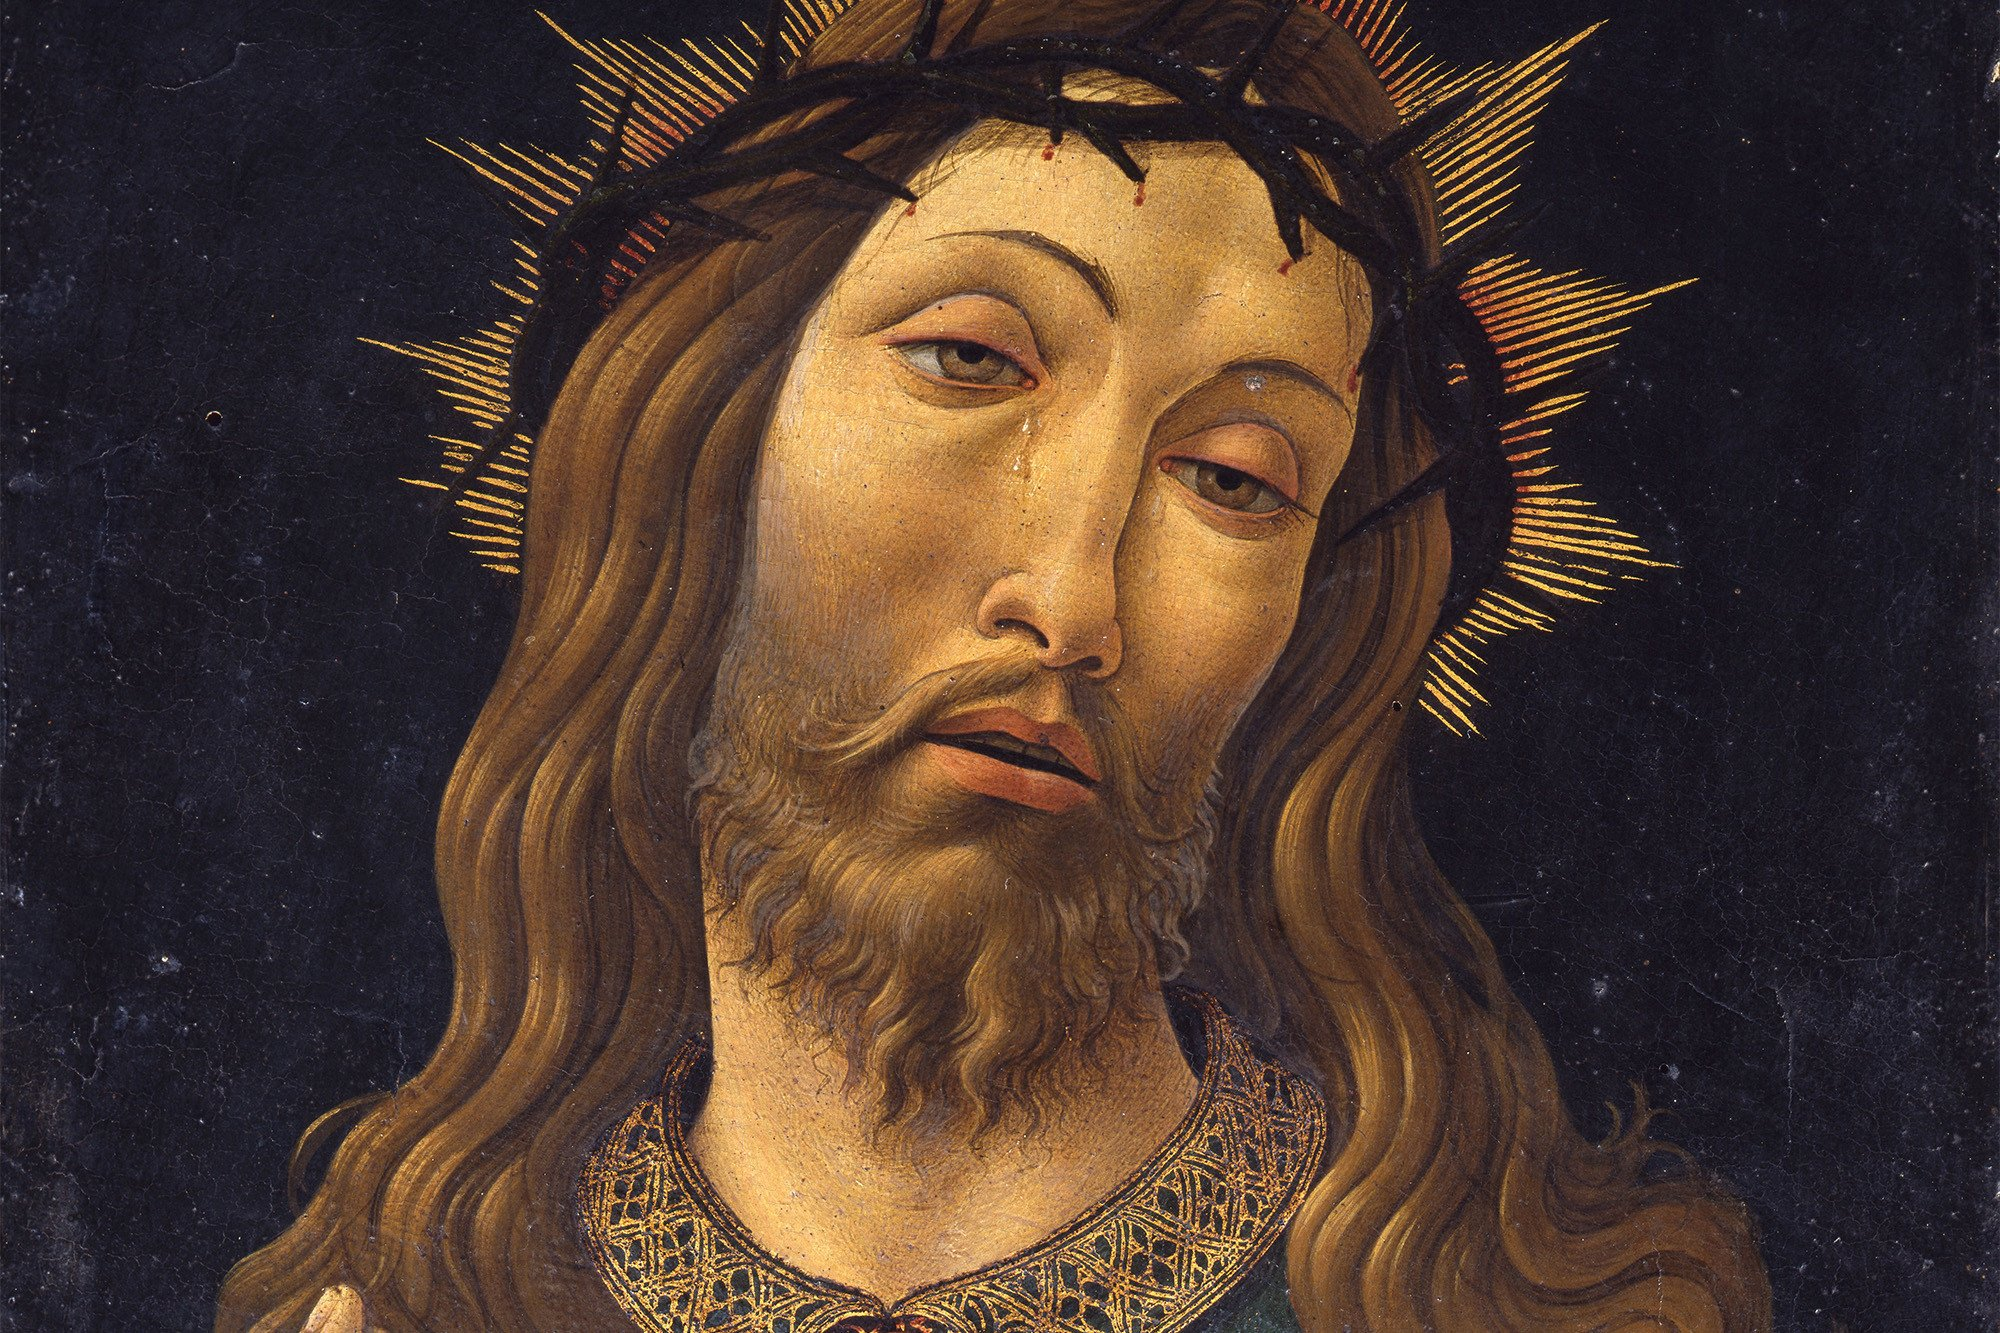 New book makes the case that Jesus was likely disfigured